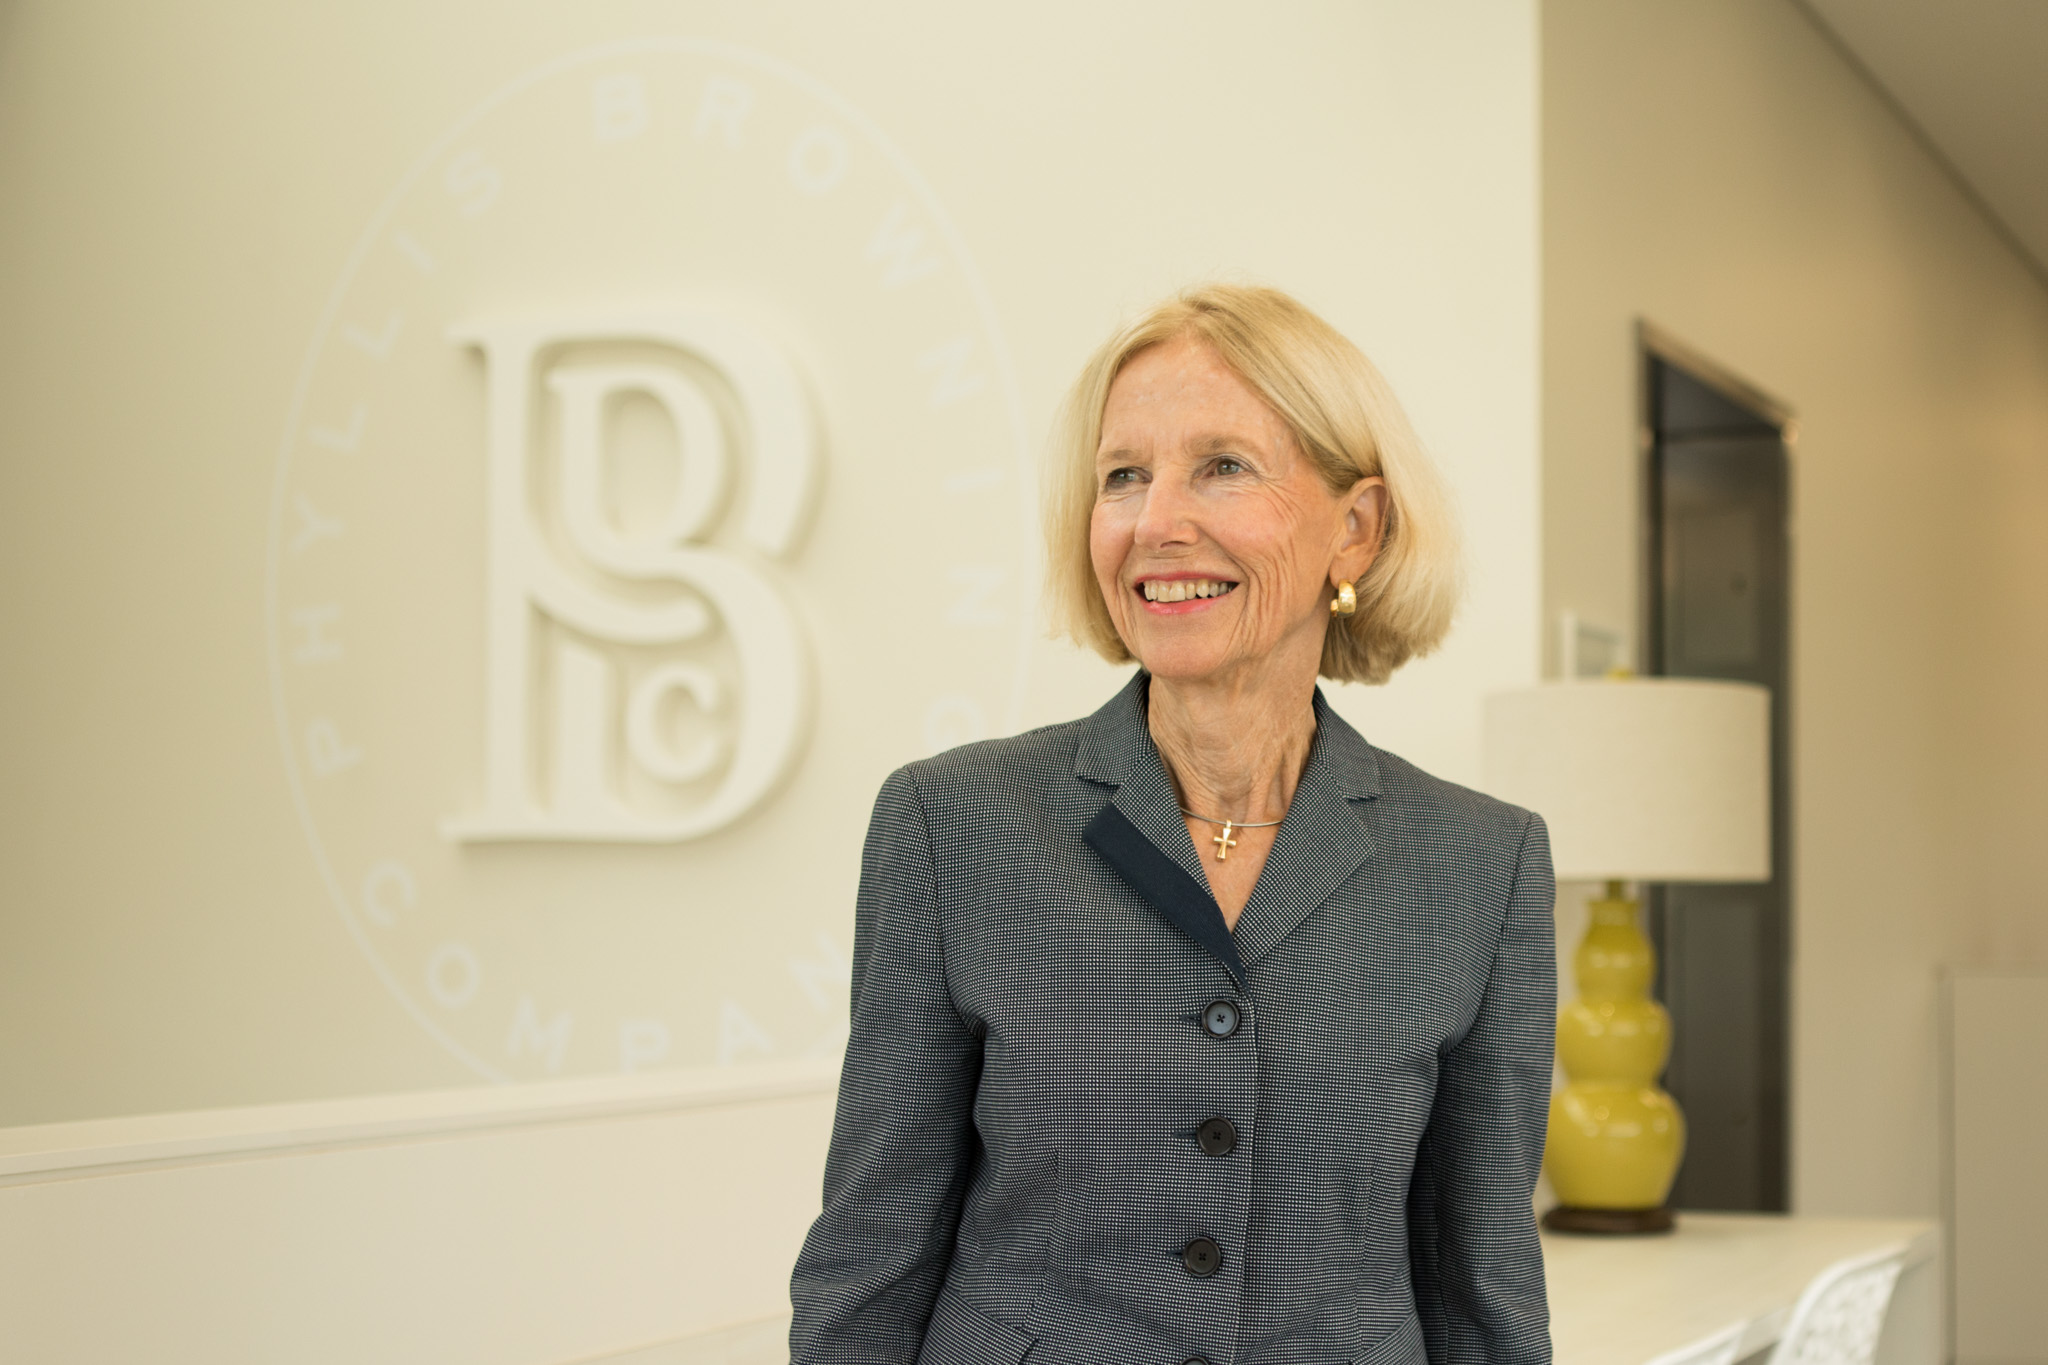 Phyllis Browning Company CEO Phyllis Browning stands near the large company logo on the wall.